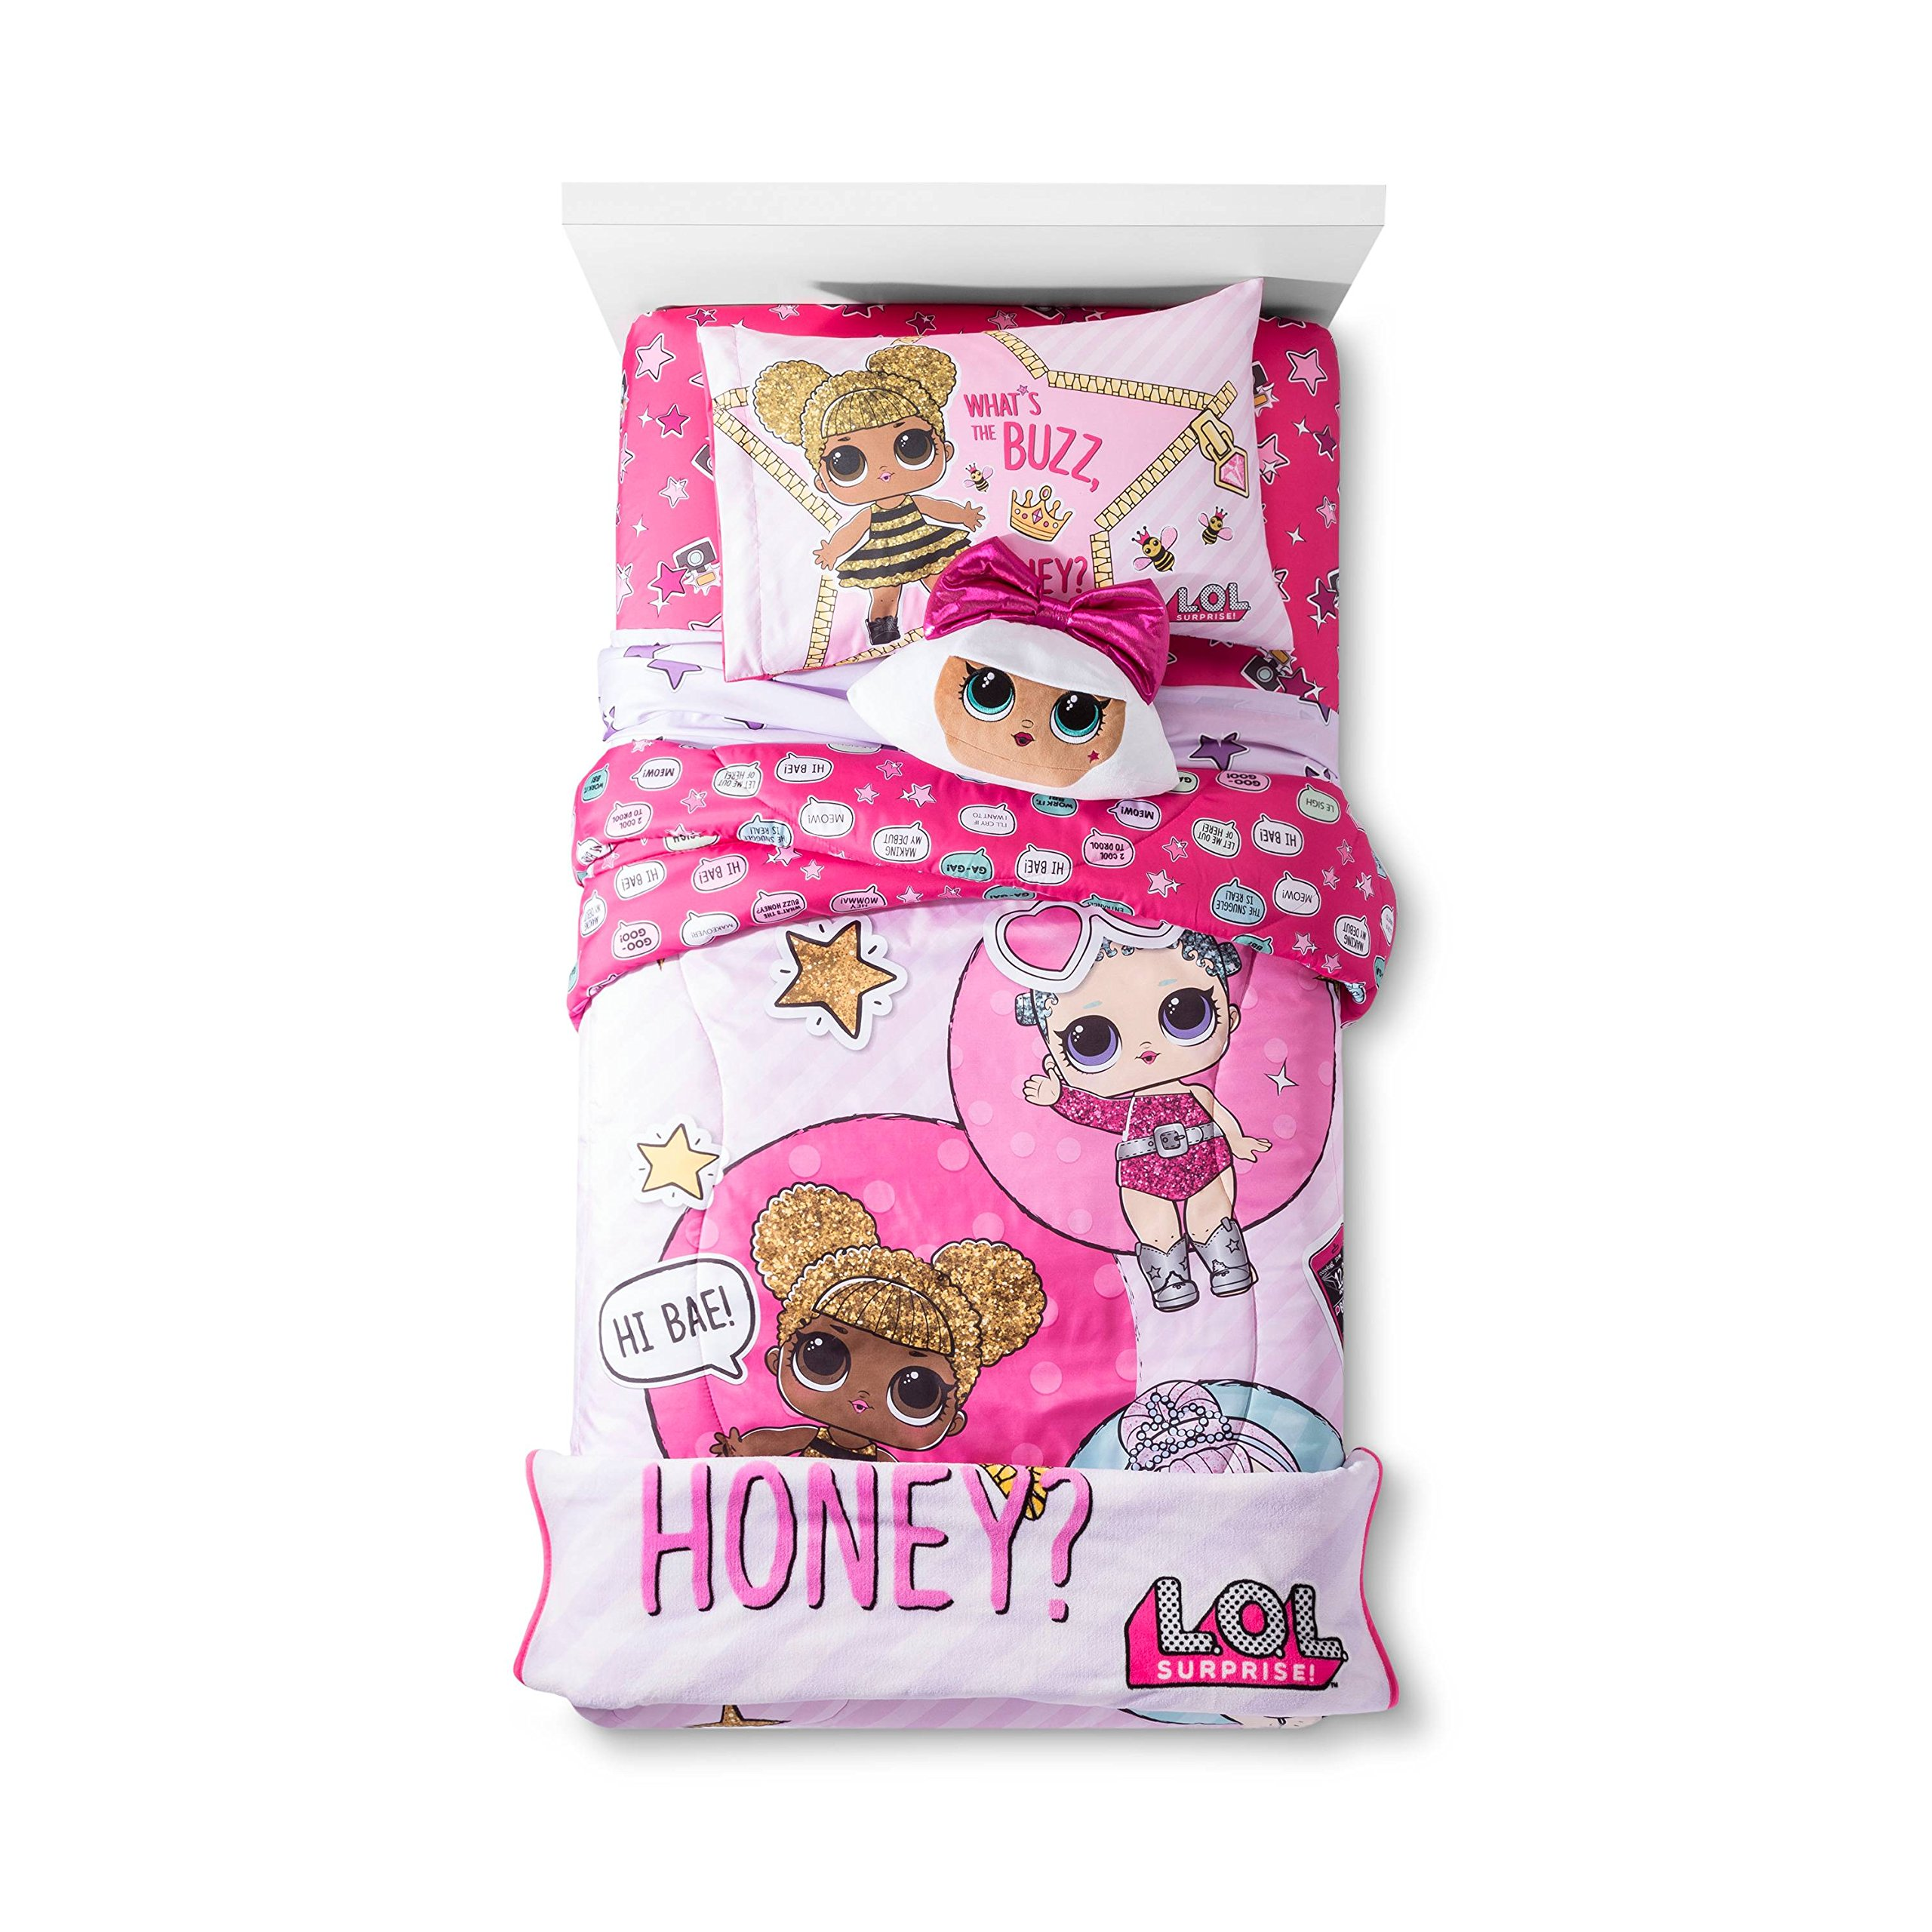 Franco LOL Twin Comforter and Sheet Set with Diva Pillow and Throw